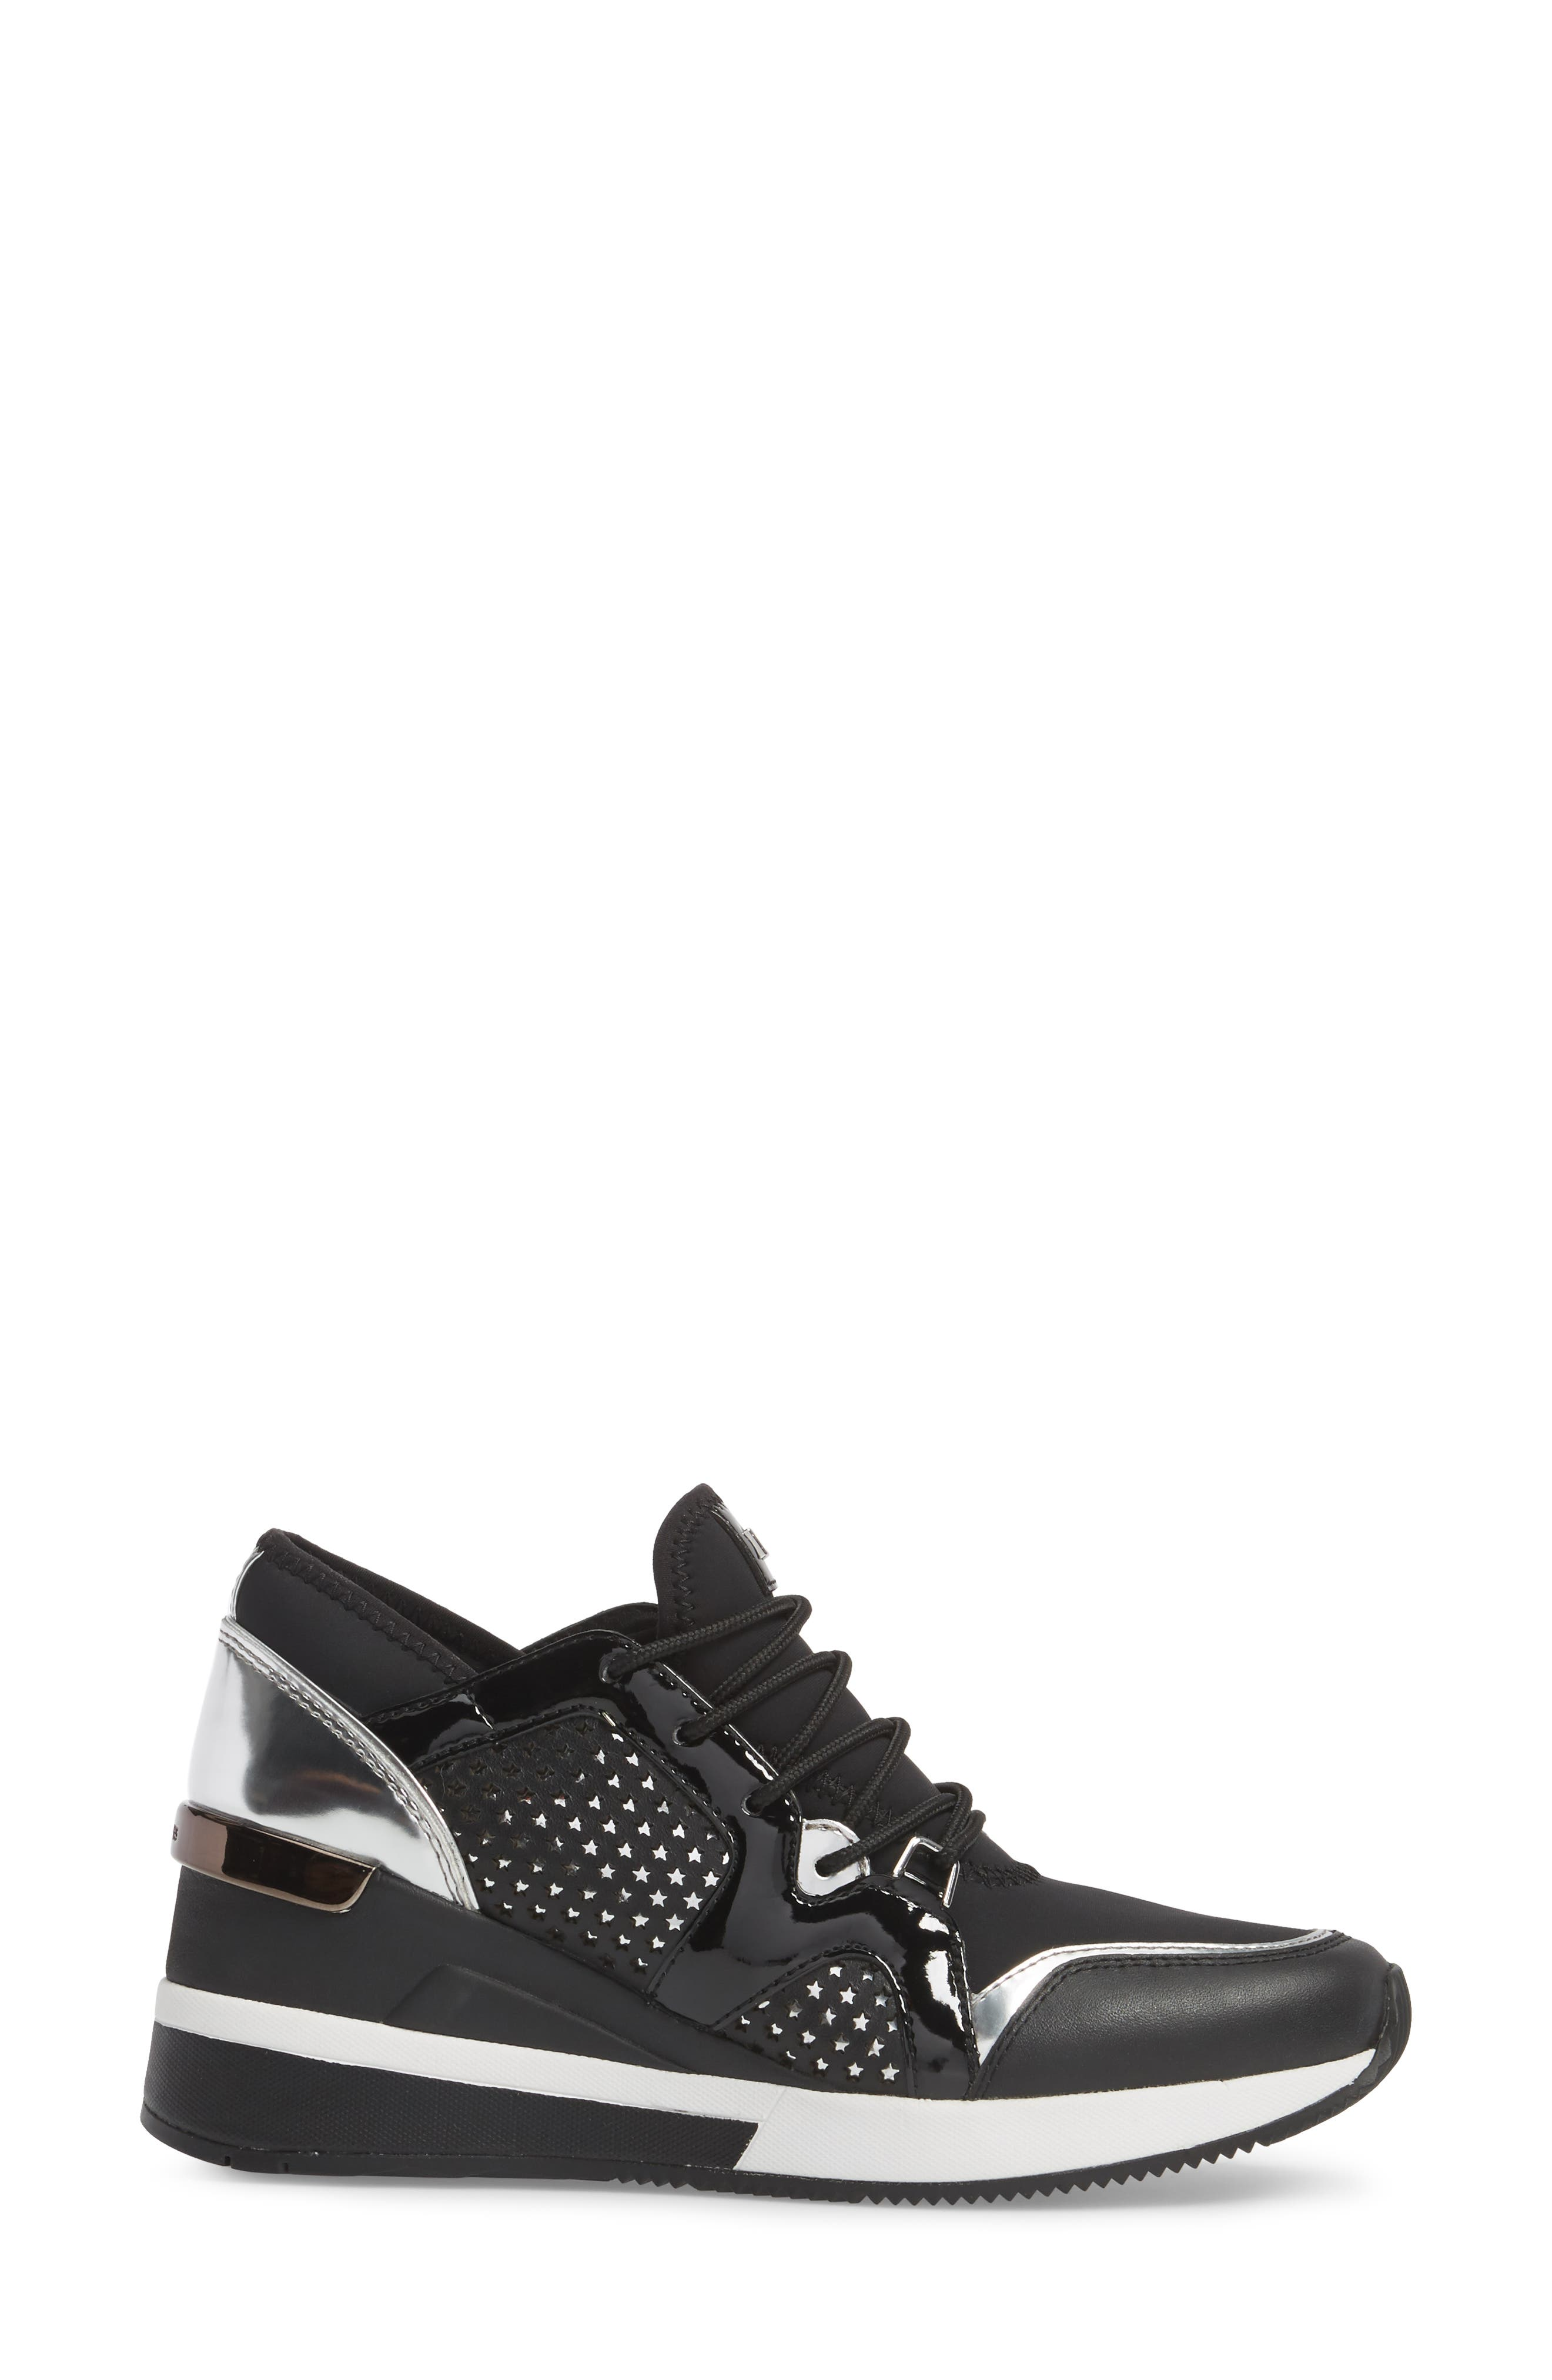 Scout Wedge Sneaker,                             Alternate thumbnail 3, color,                             002